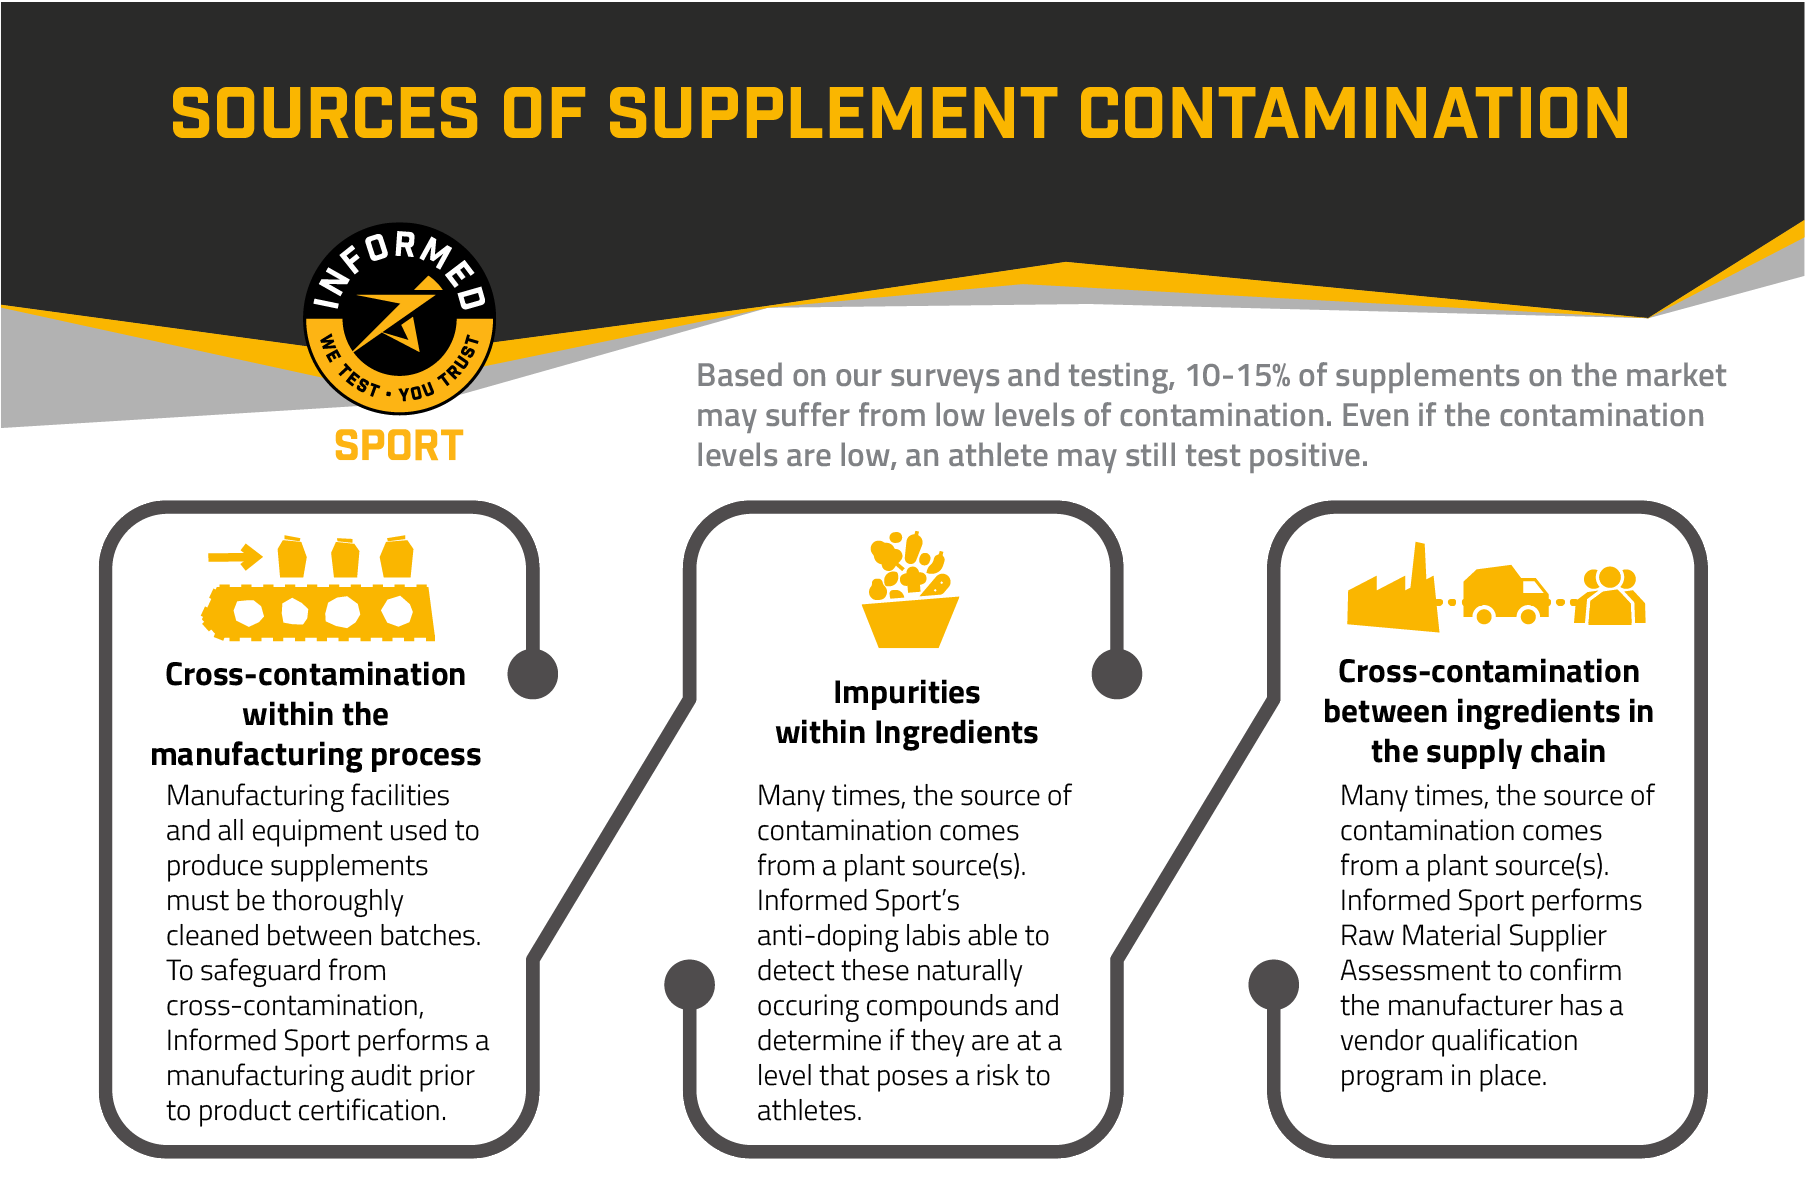 Sources of Contamination - Informed Sport